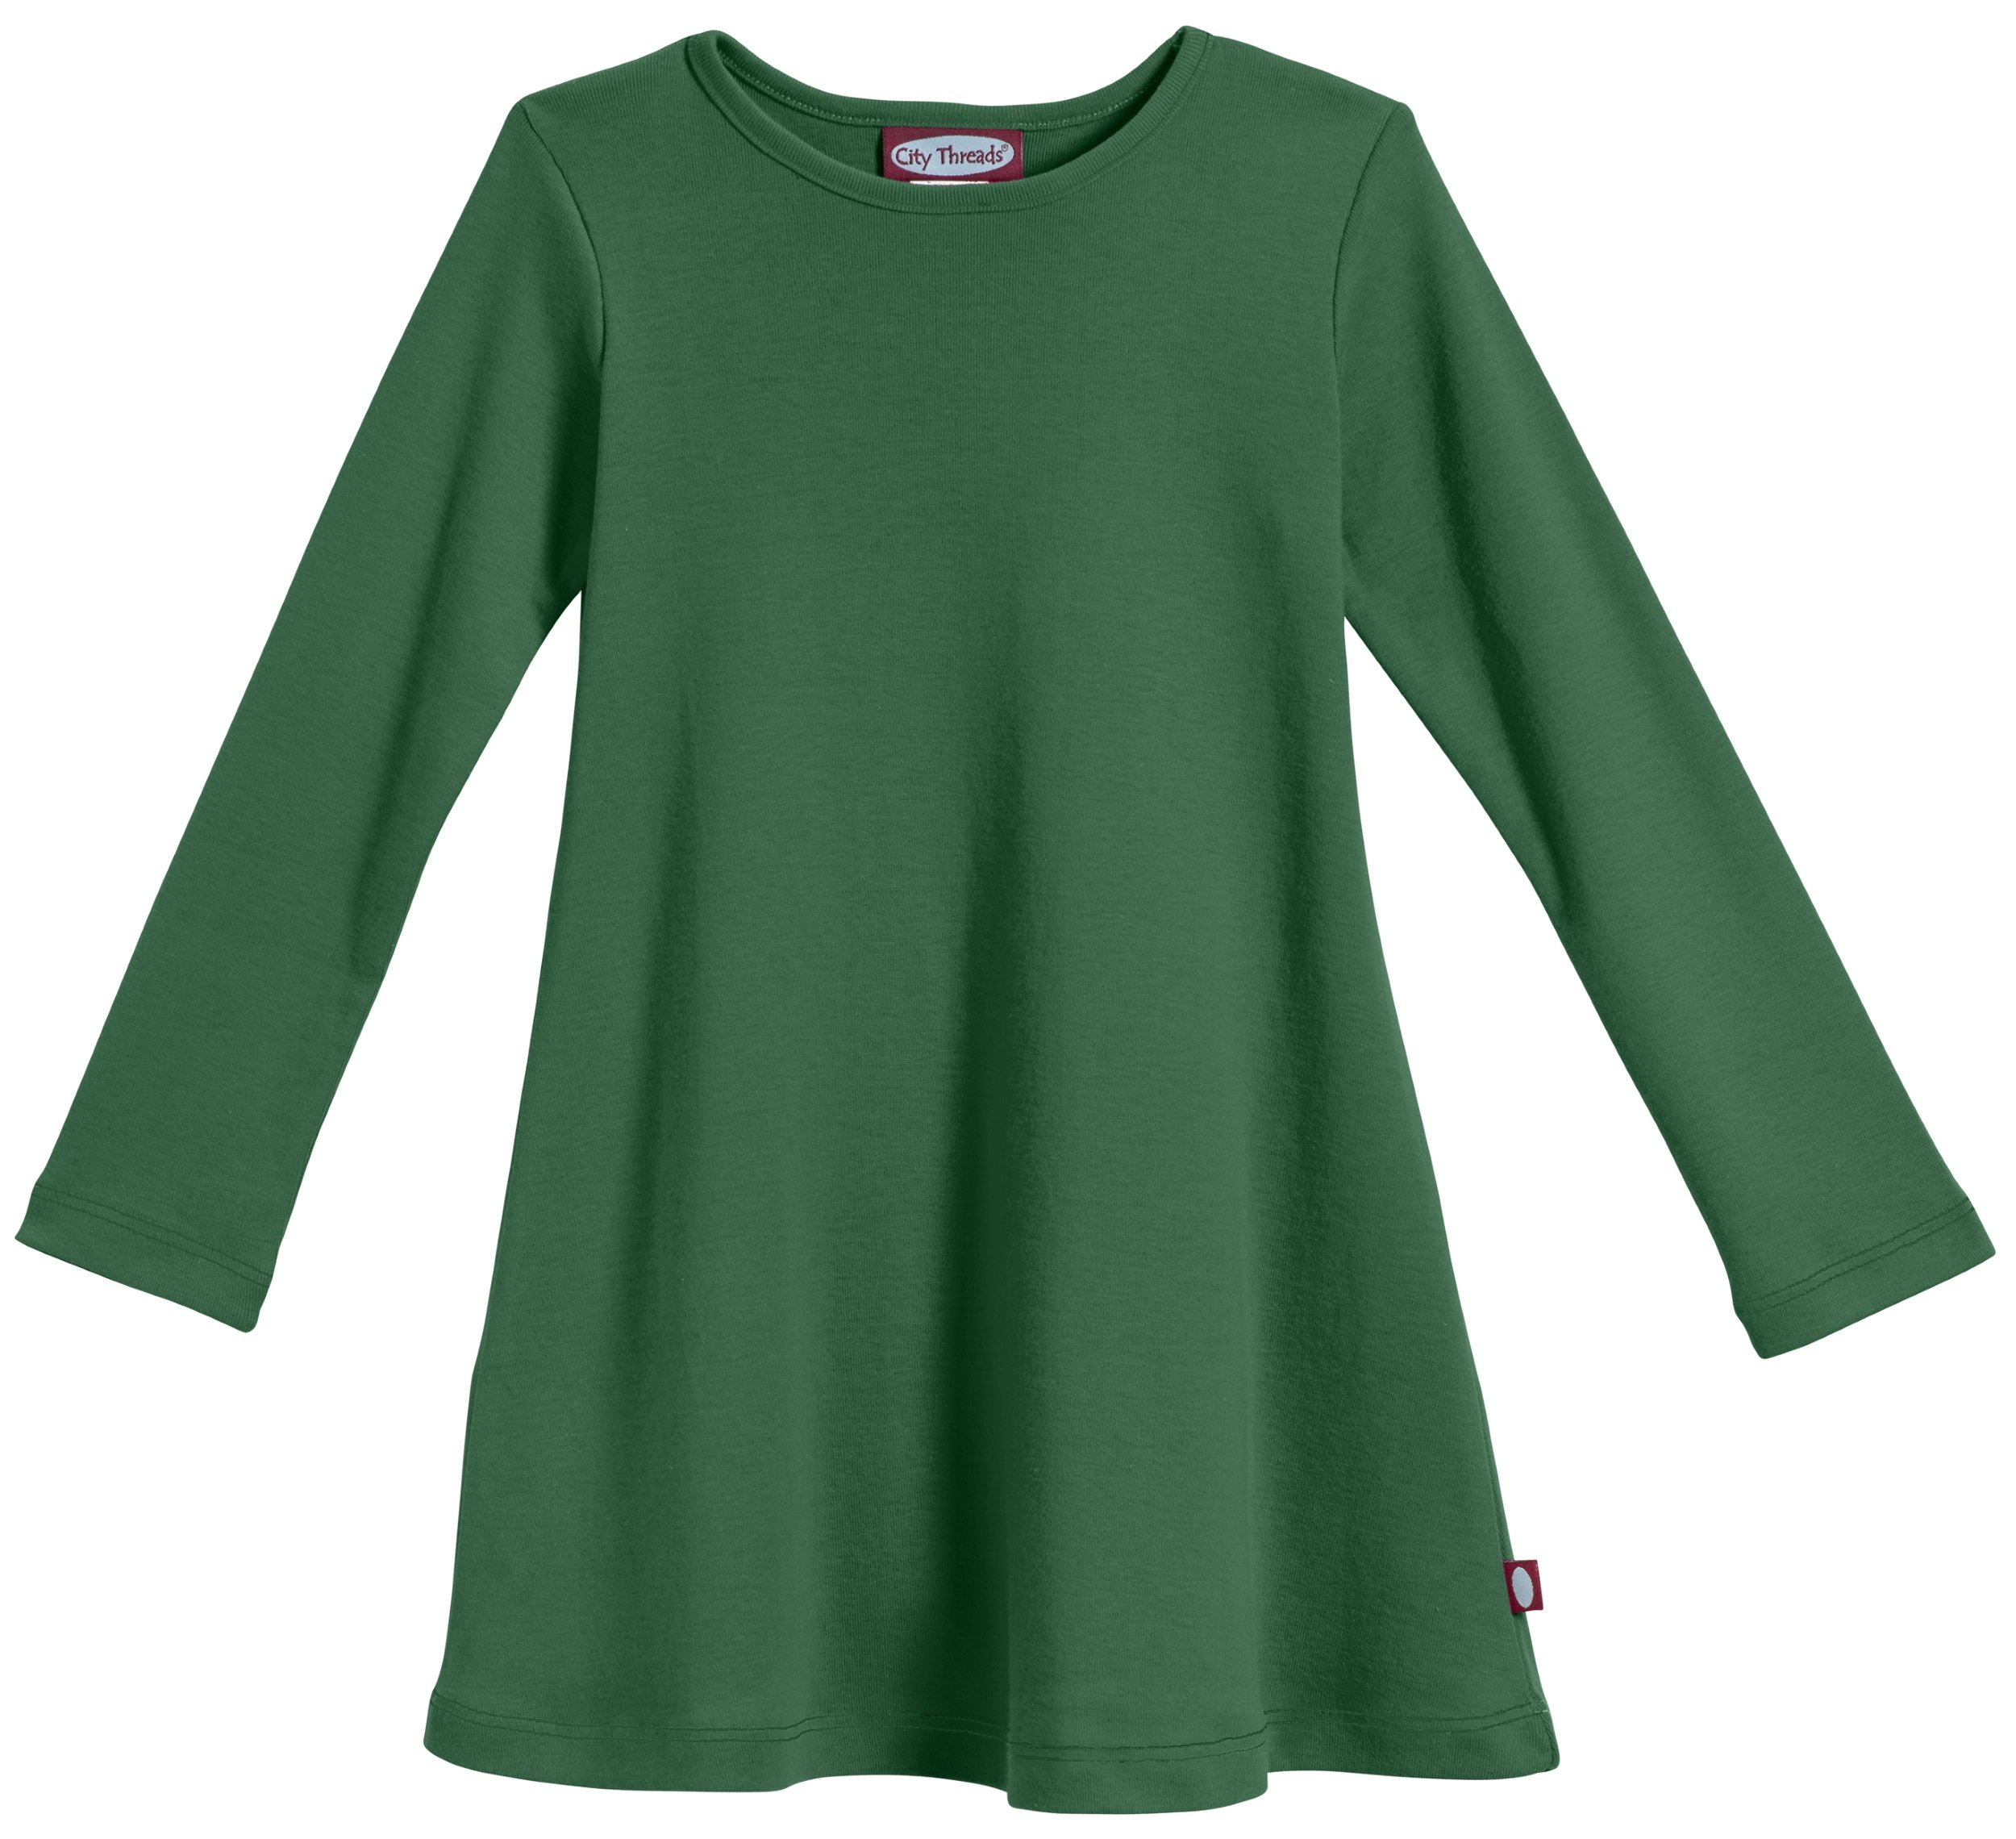 City Threads Big Girls' Cotton Long Sleeve Dress For School or Play For Sensitive Skin SPD Sensory Friendly, Forest Green, 8